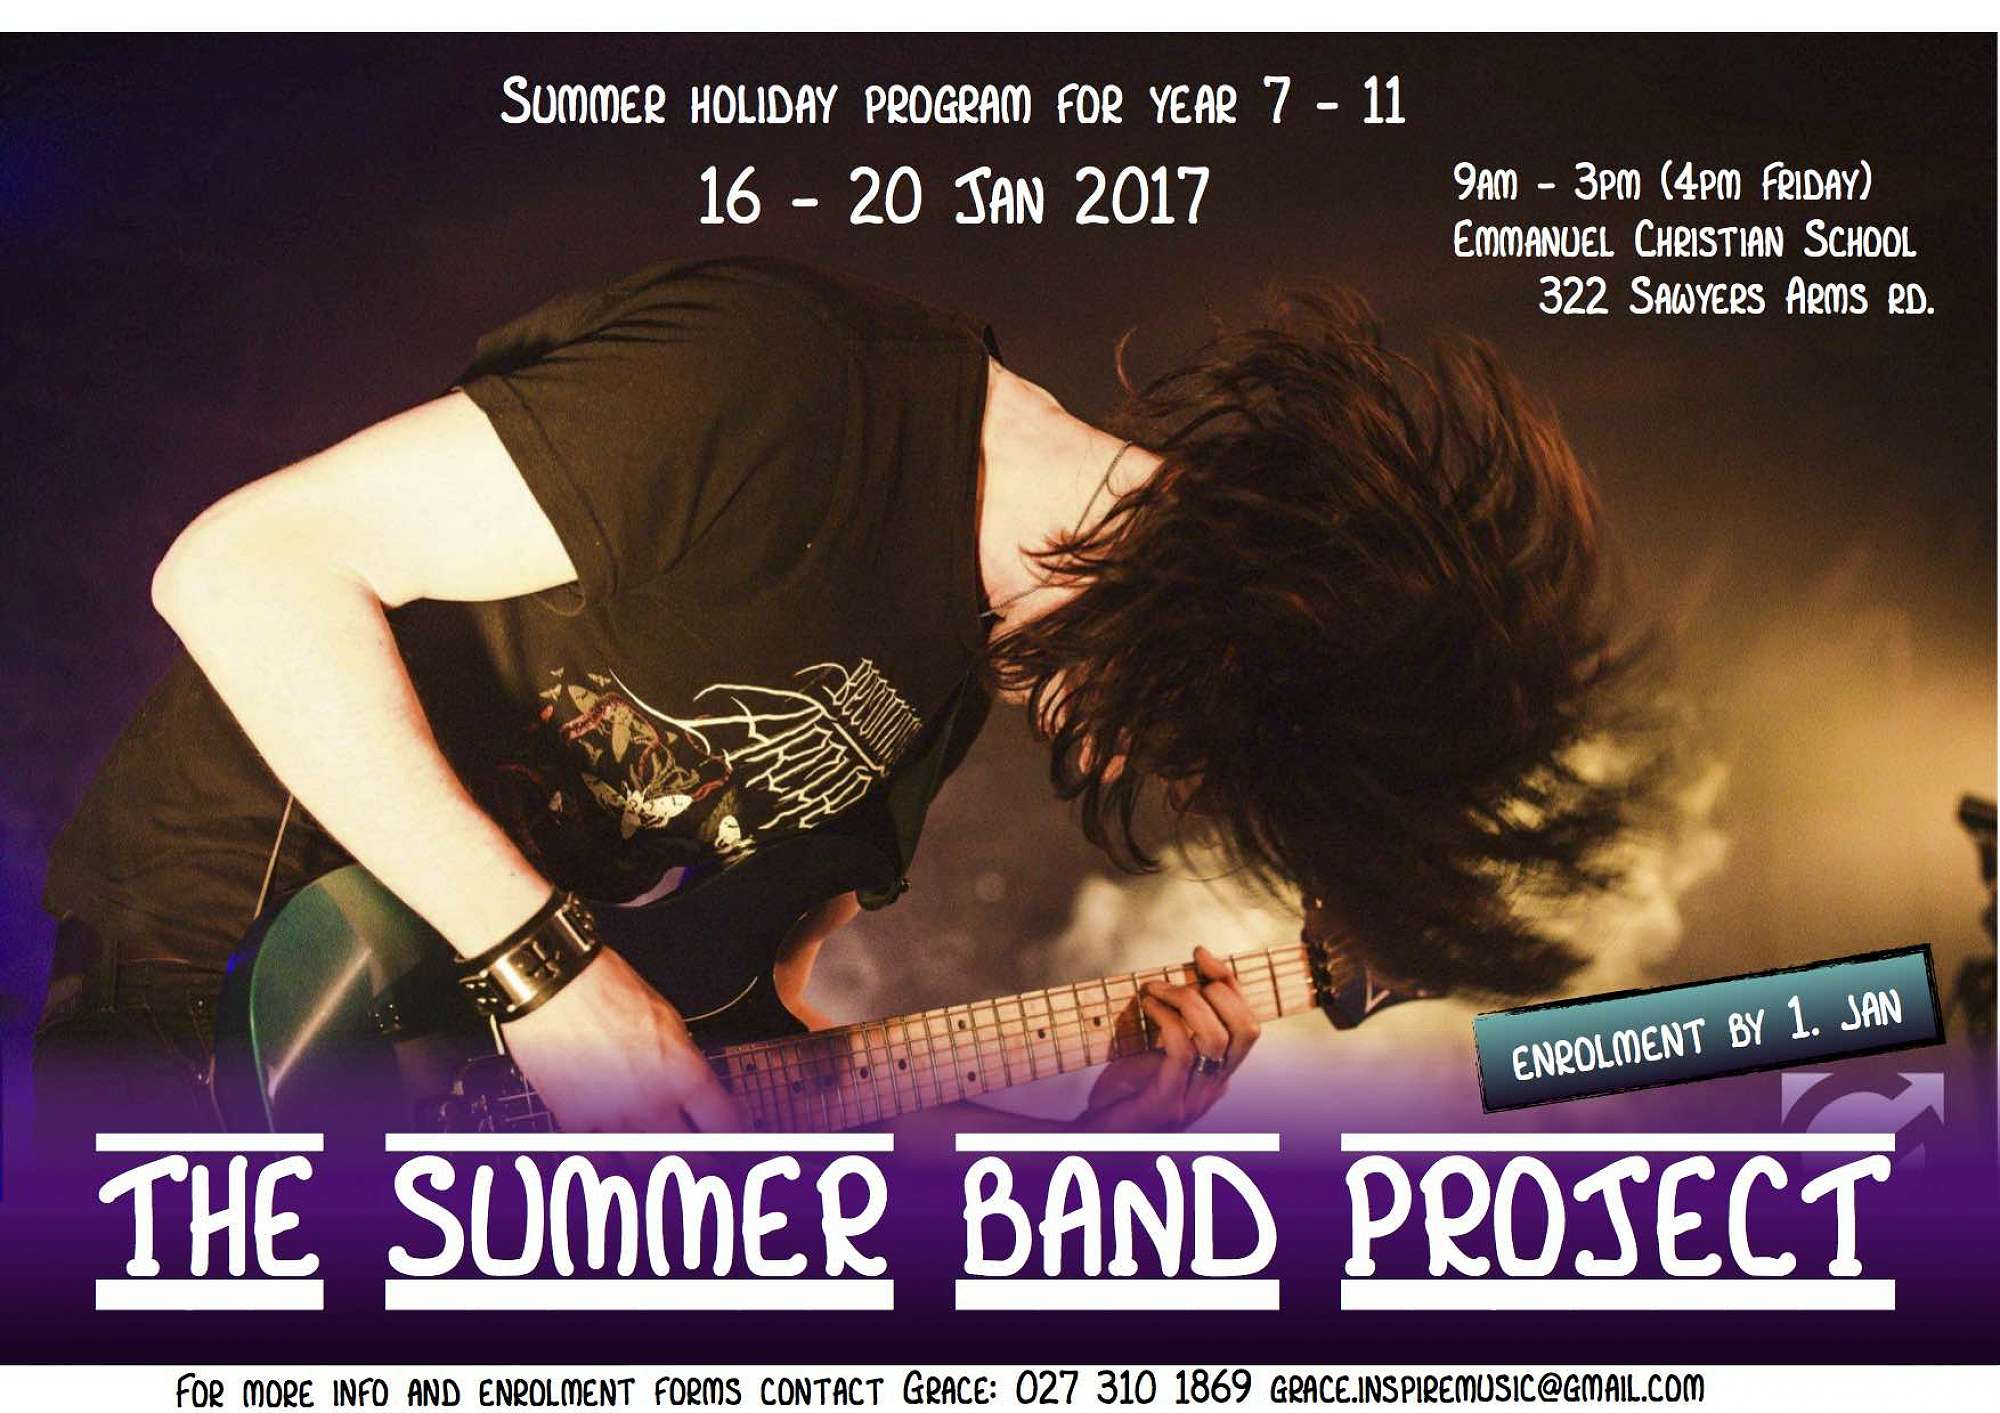 The Summer Band Project